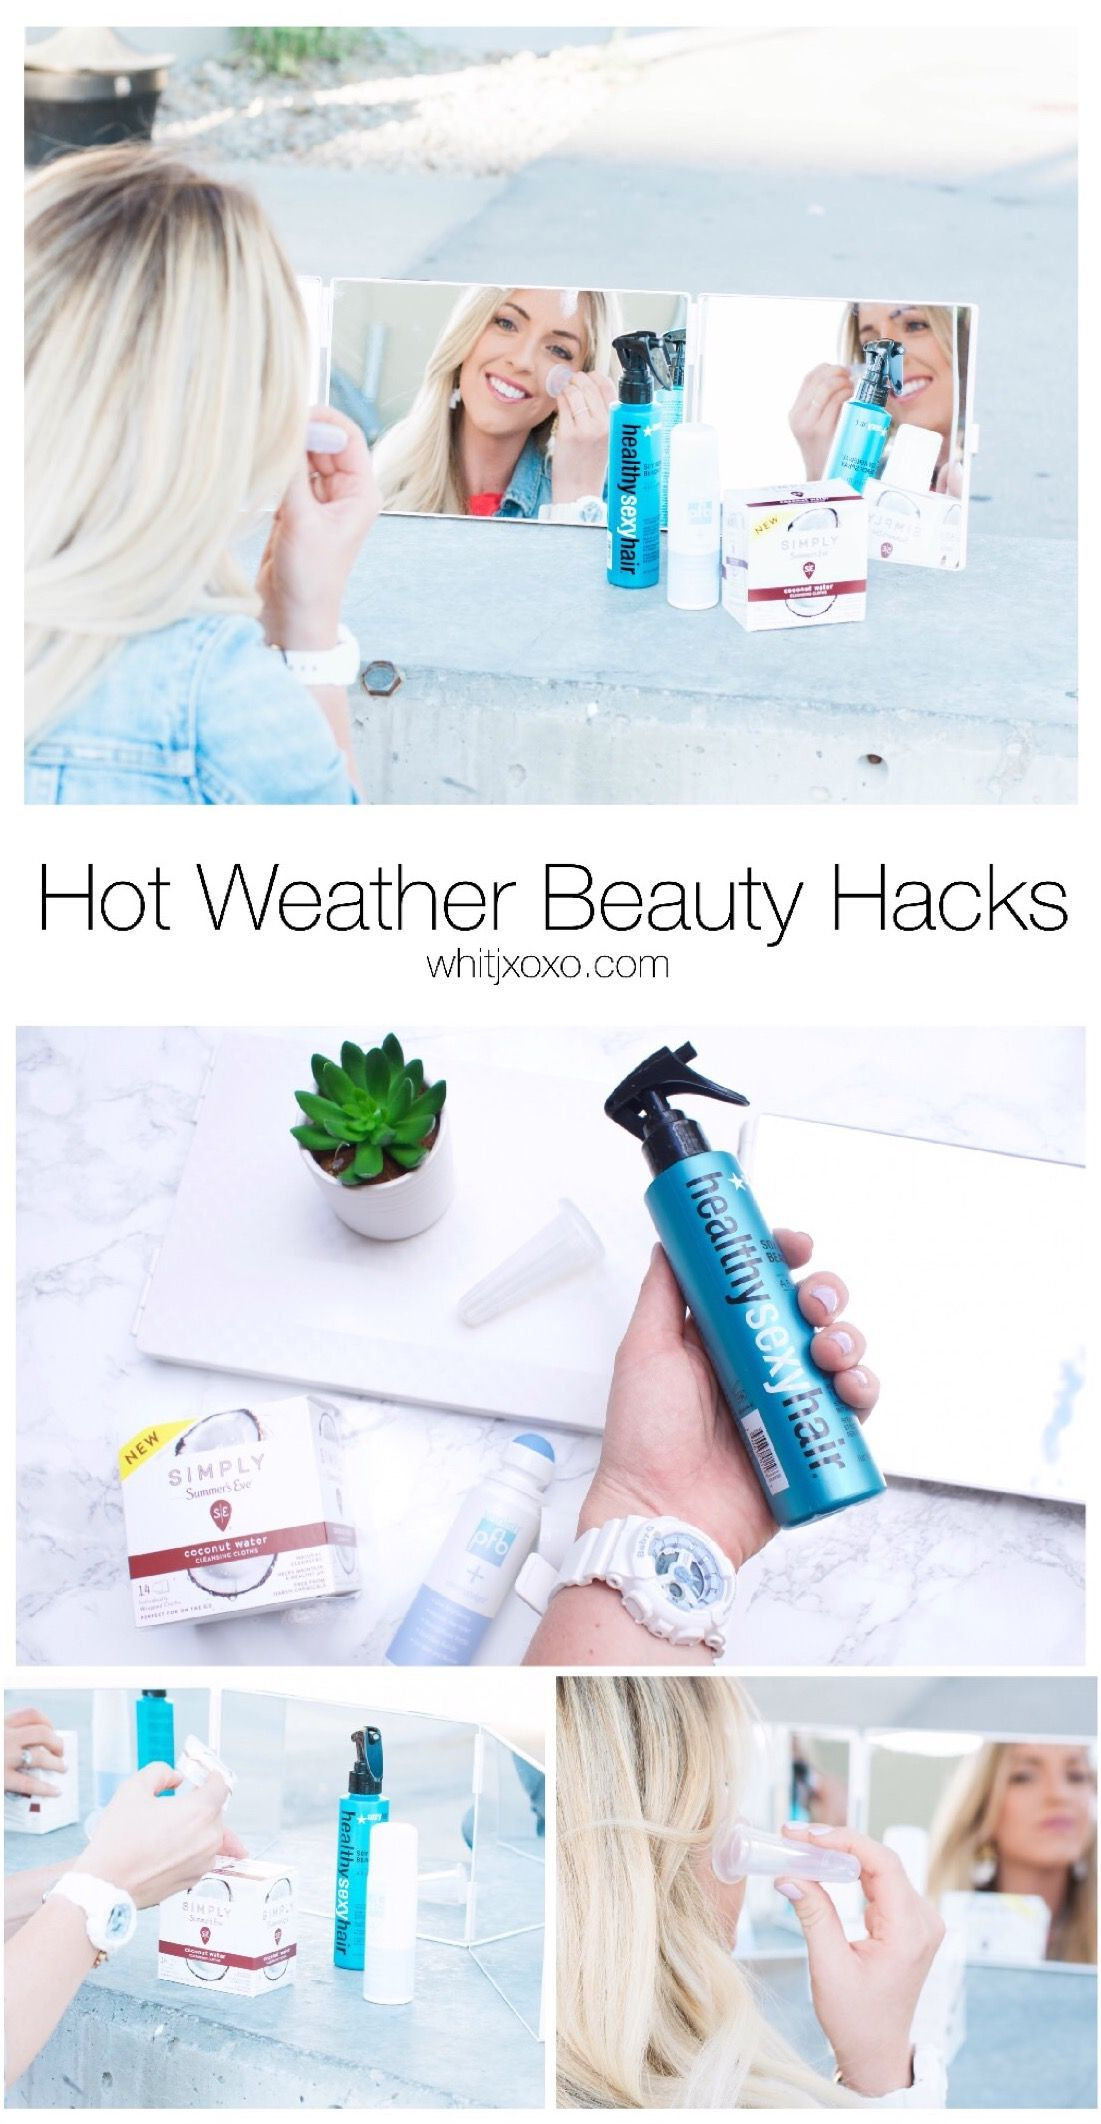 6 amazing hot weather beauty hacks to make your life and beauty routine a breeze in this heat!The more convenient the product- the better! whitjxoxo.com